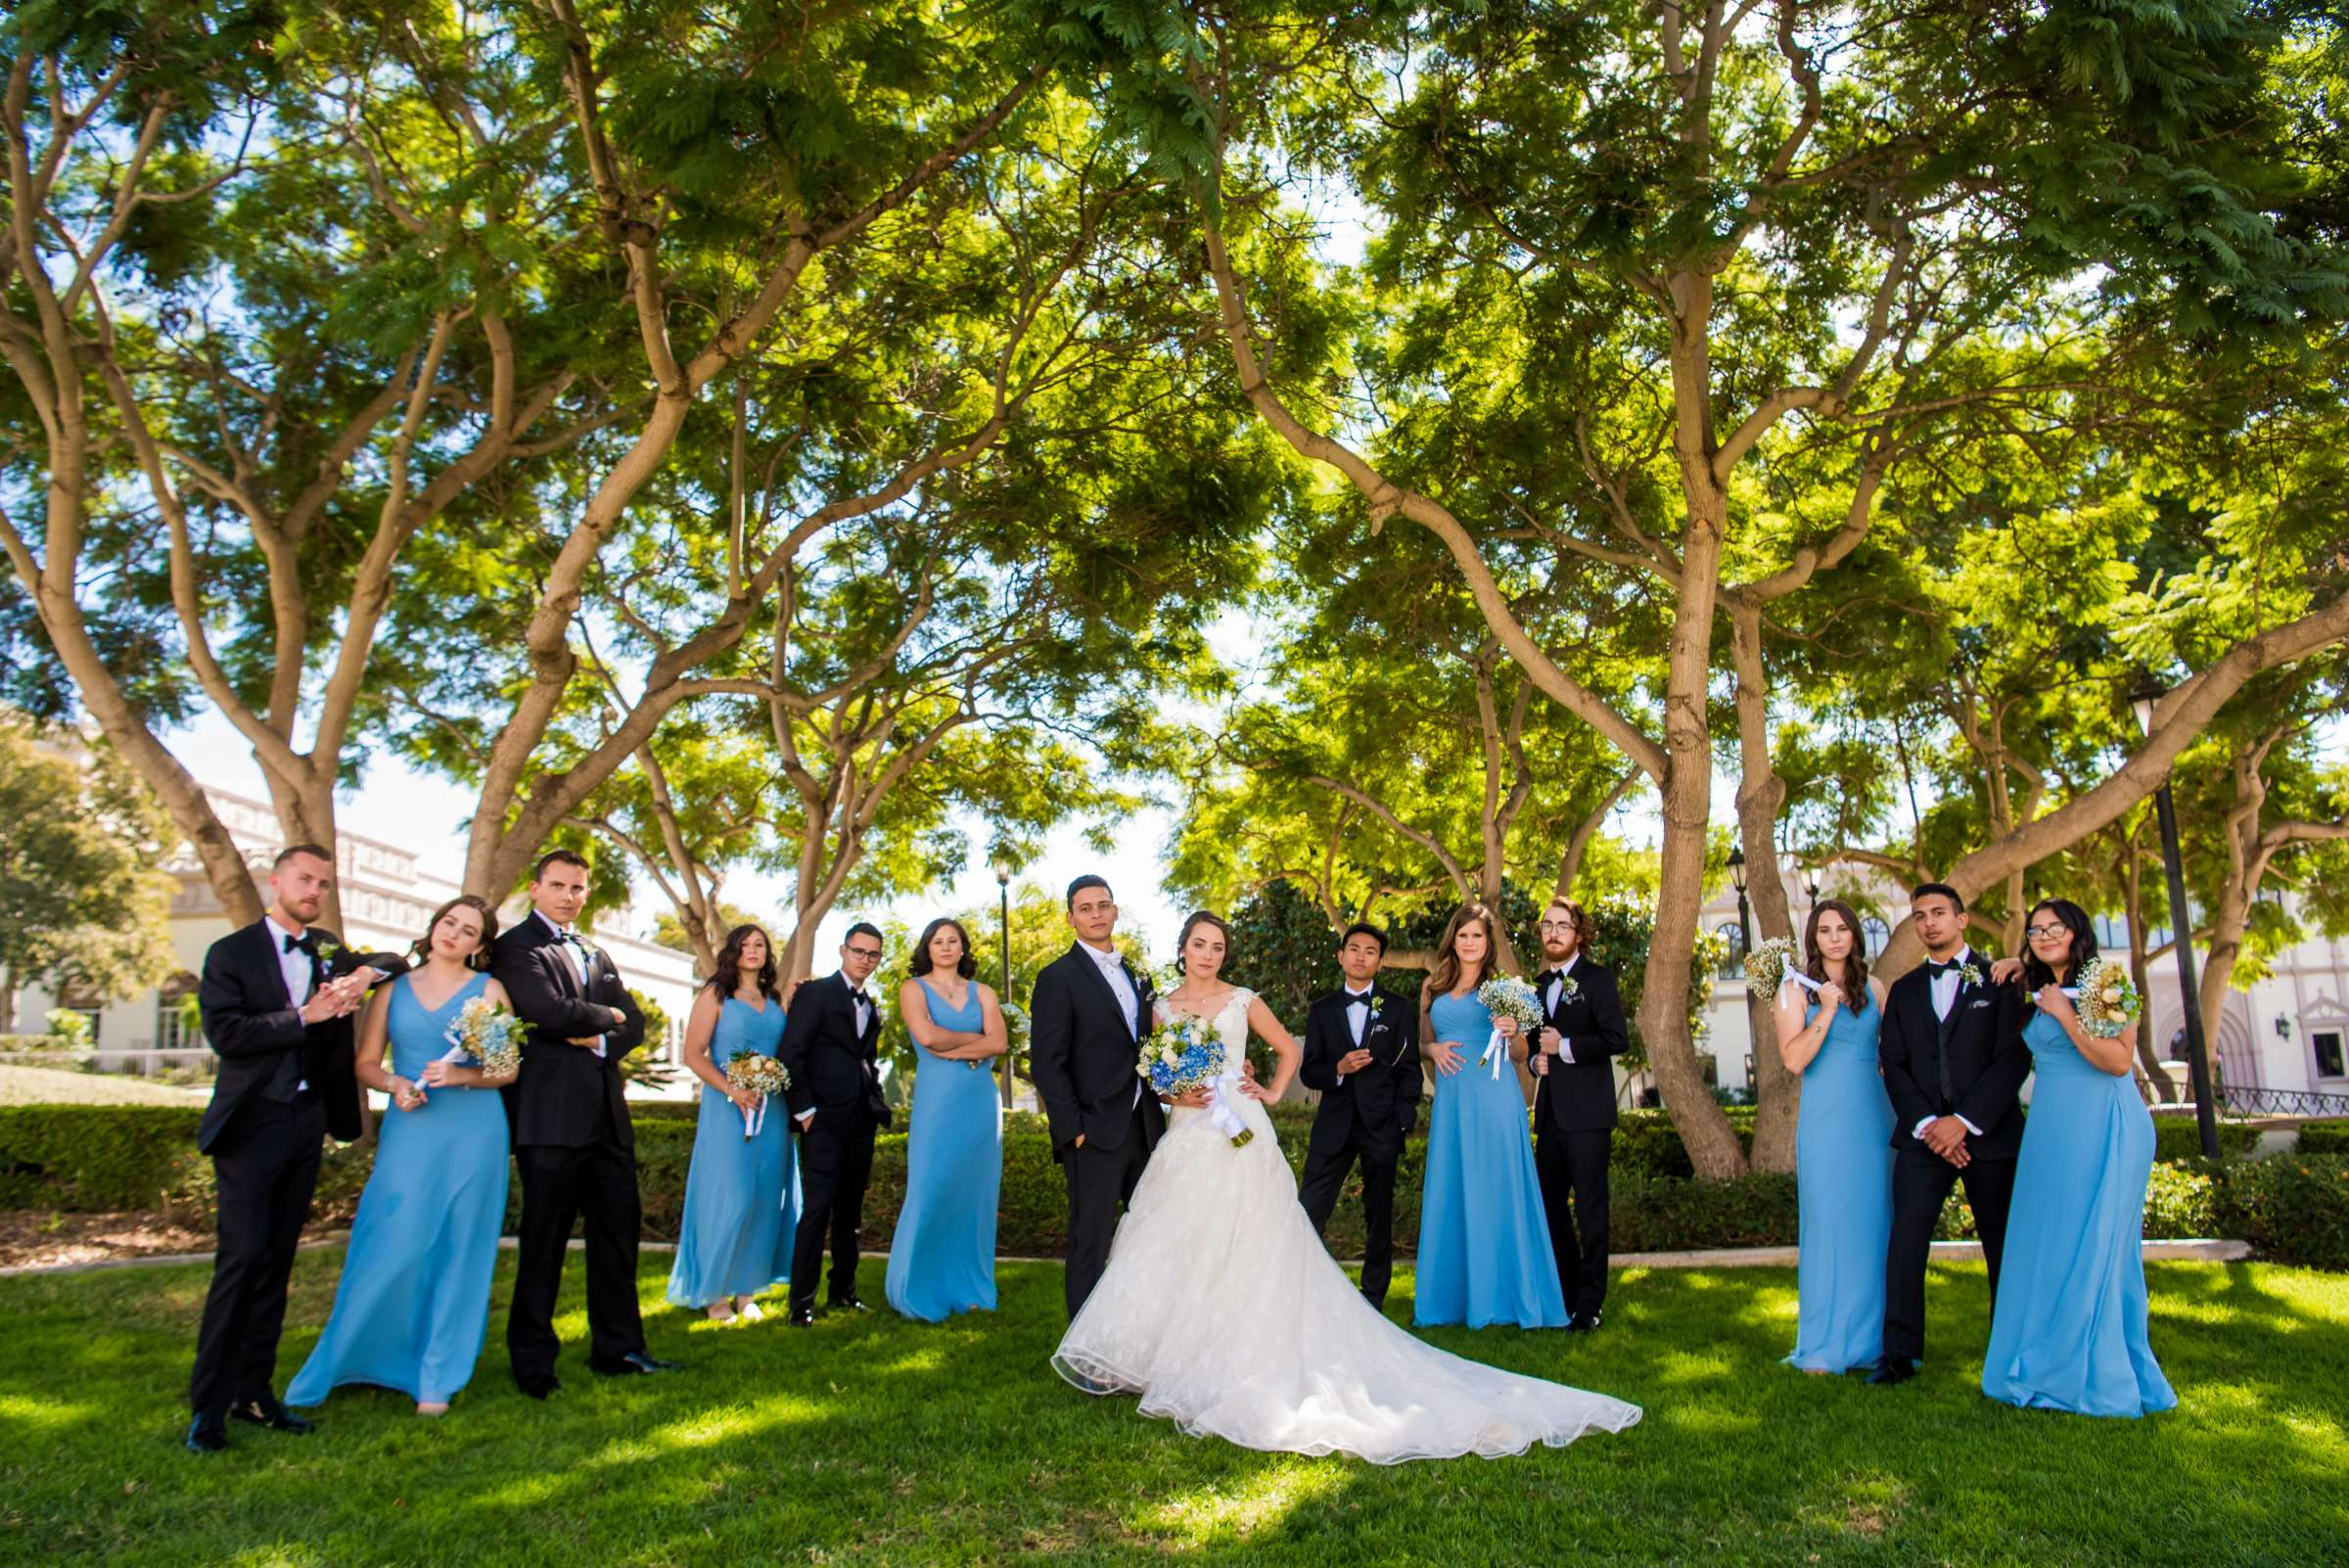 The Immaculata Wedding, Arianna and Jonah Wedding Photo #7 by True Photography